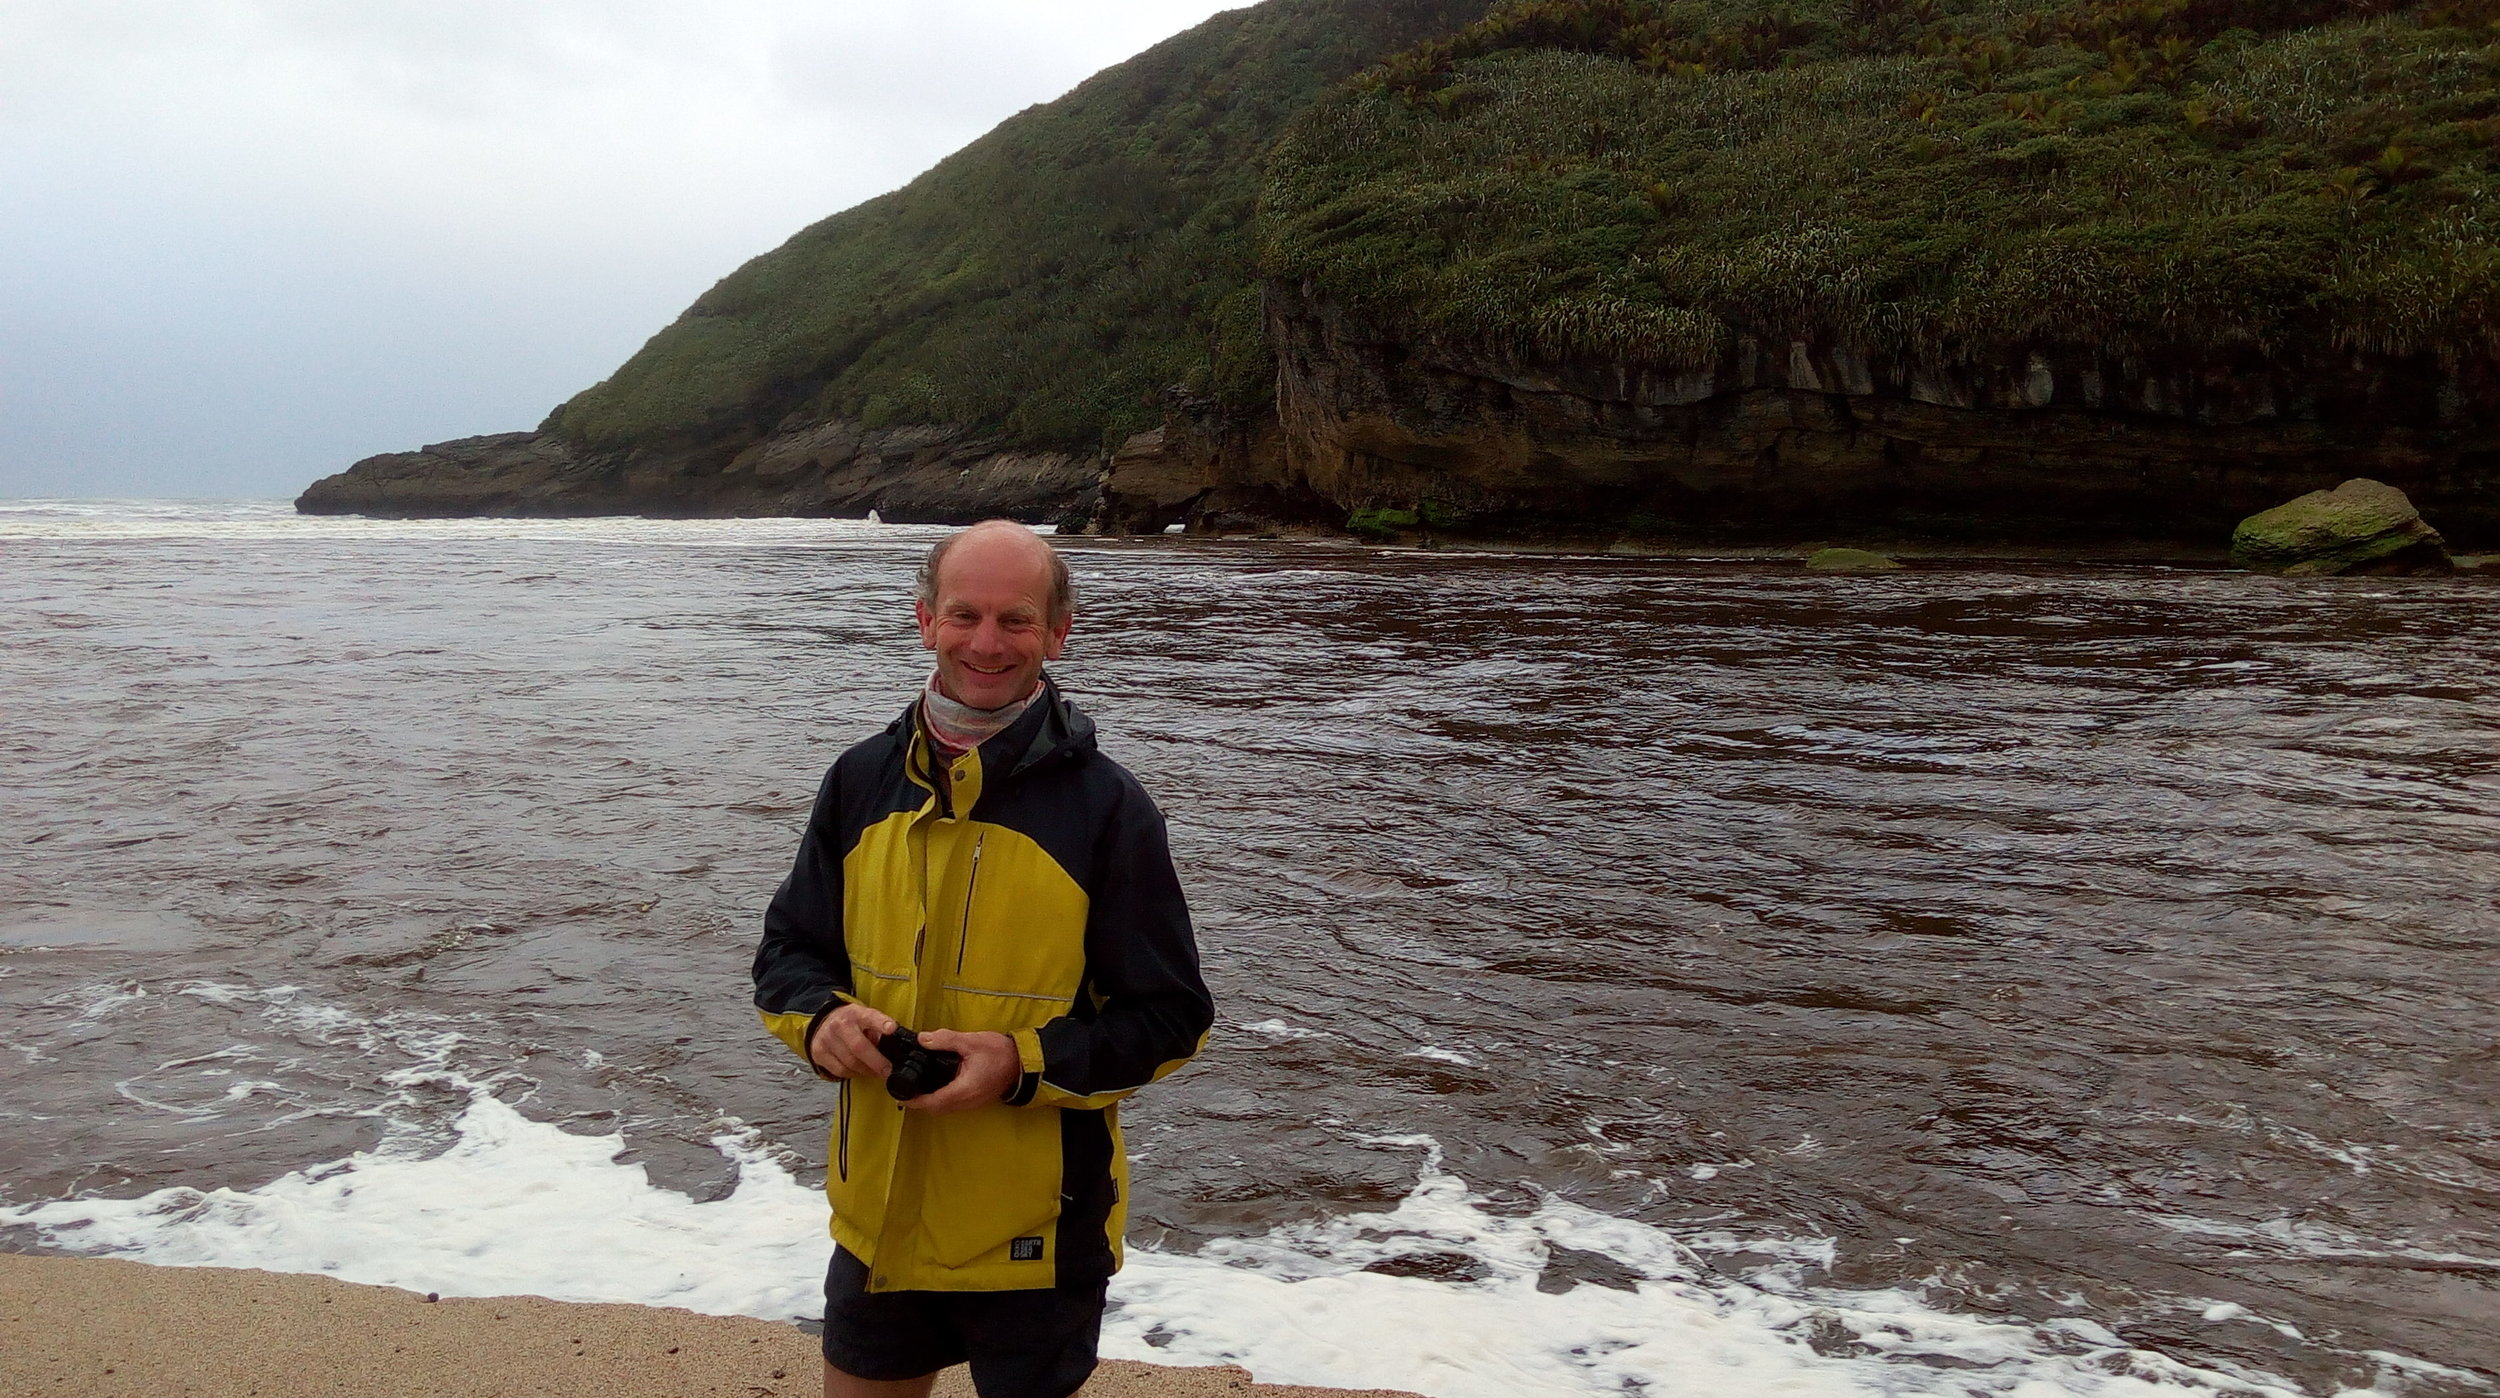 Another of our guides - all smiles Richard at the Heaphy beach